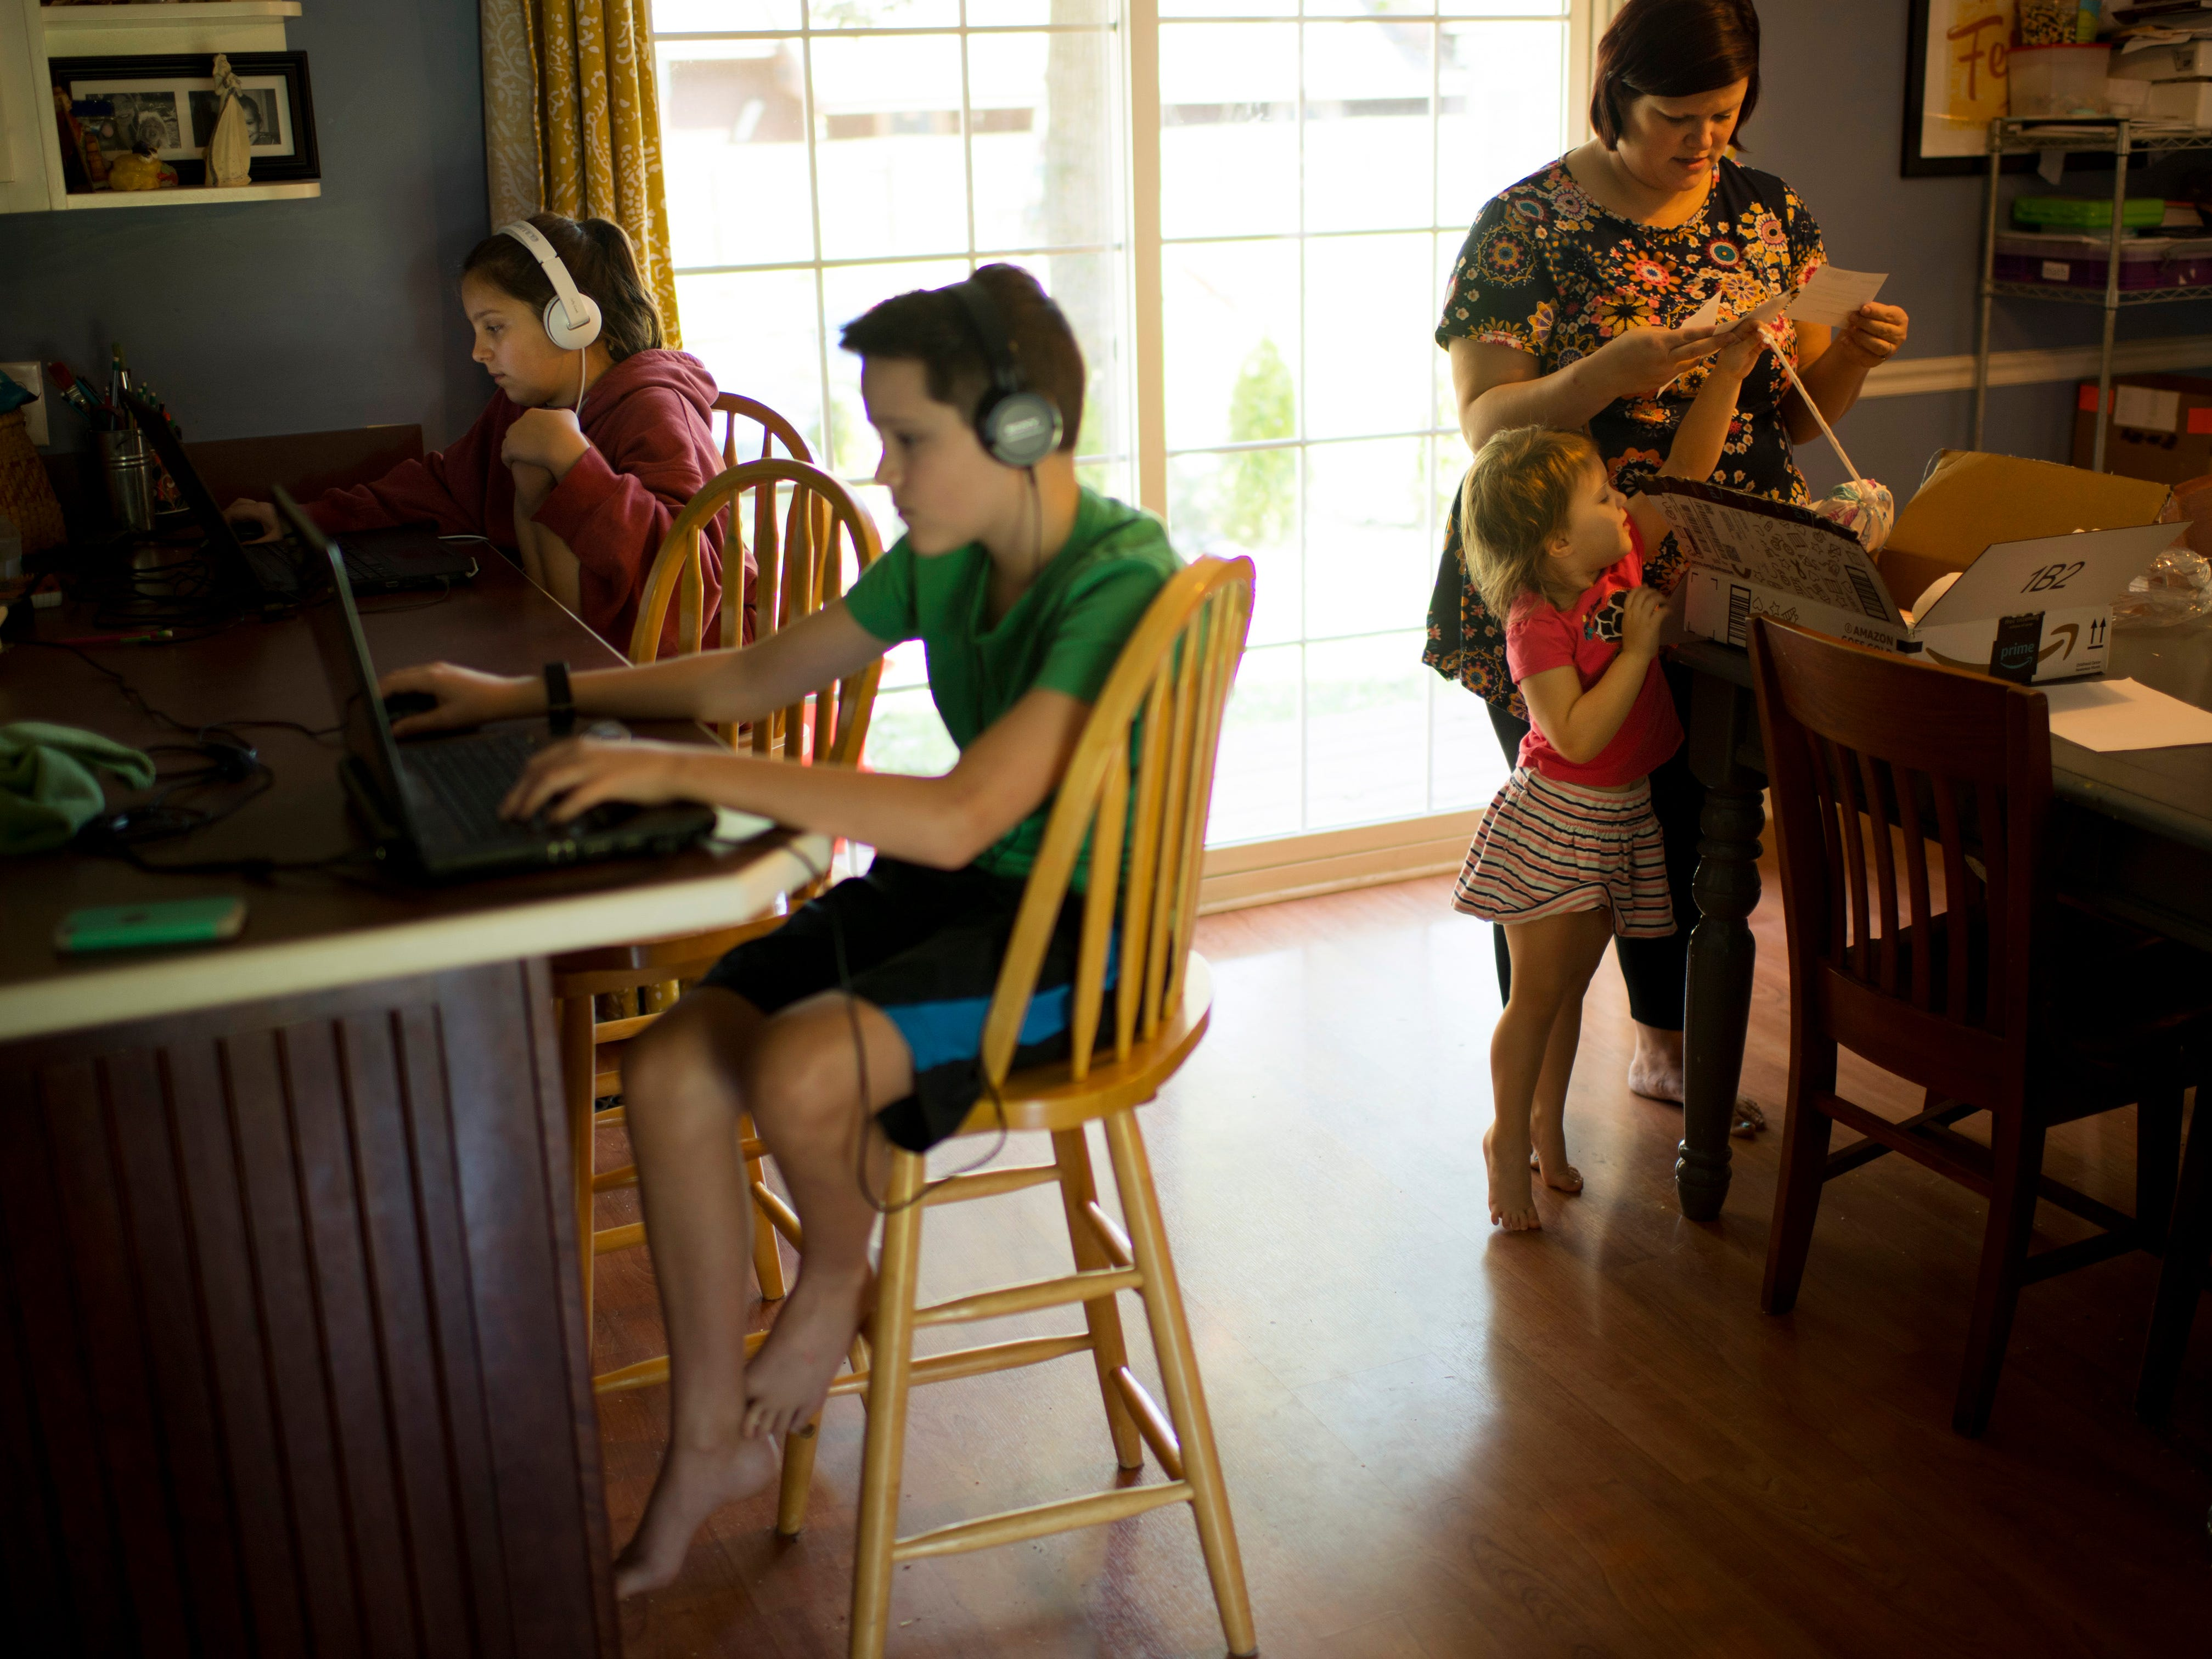 Heather Harper gets help from Jacinda, 3, with the mail as Penny, 11, and Truman, 12, take a break from homework in their Newburgh, Ind., home Sept. 5, 2018. The children are homeschooled. Lucy, 15, the oldest daughter, attends Signature School.